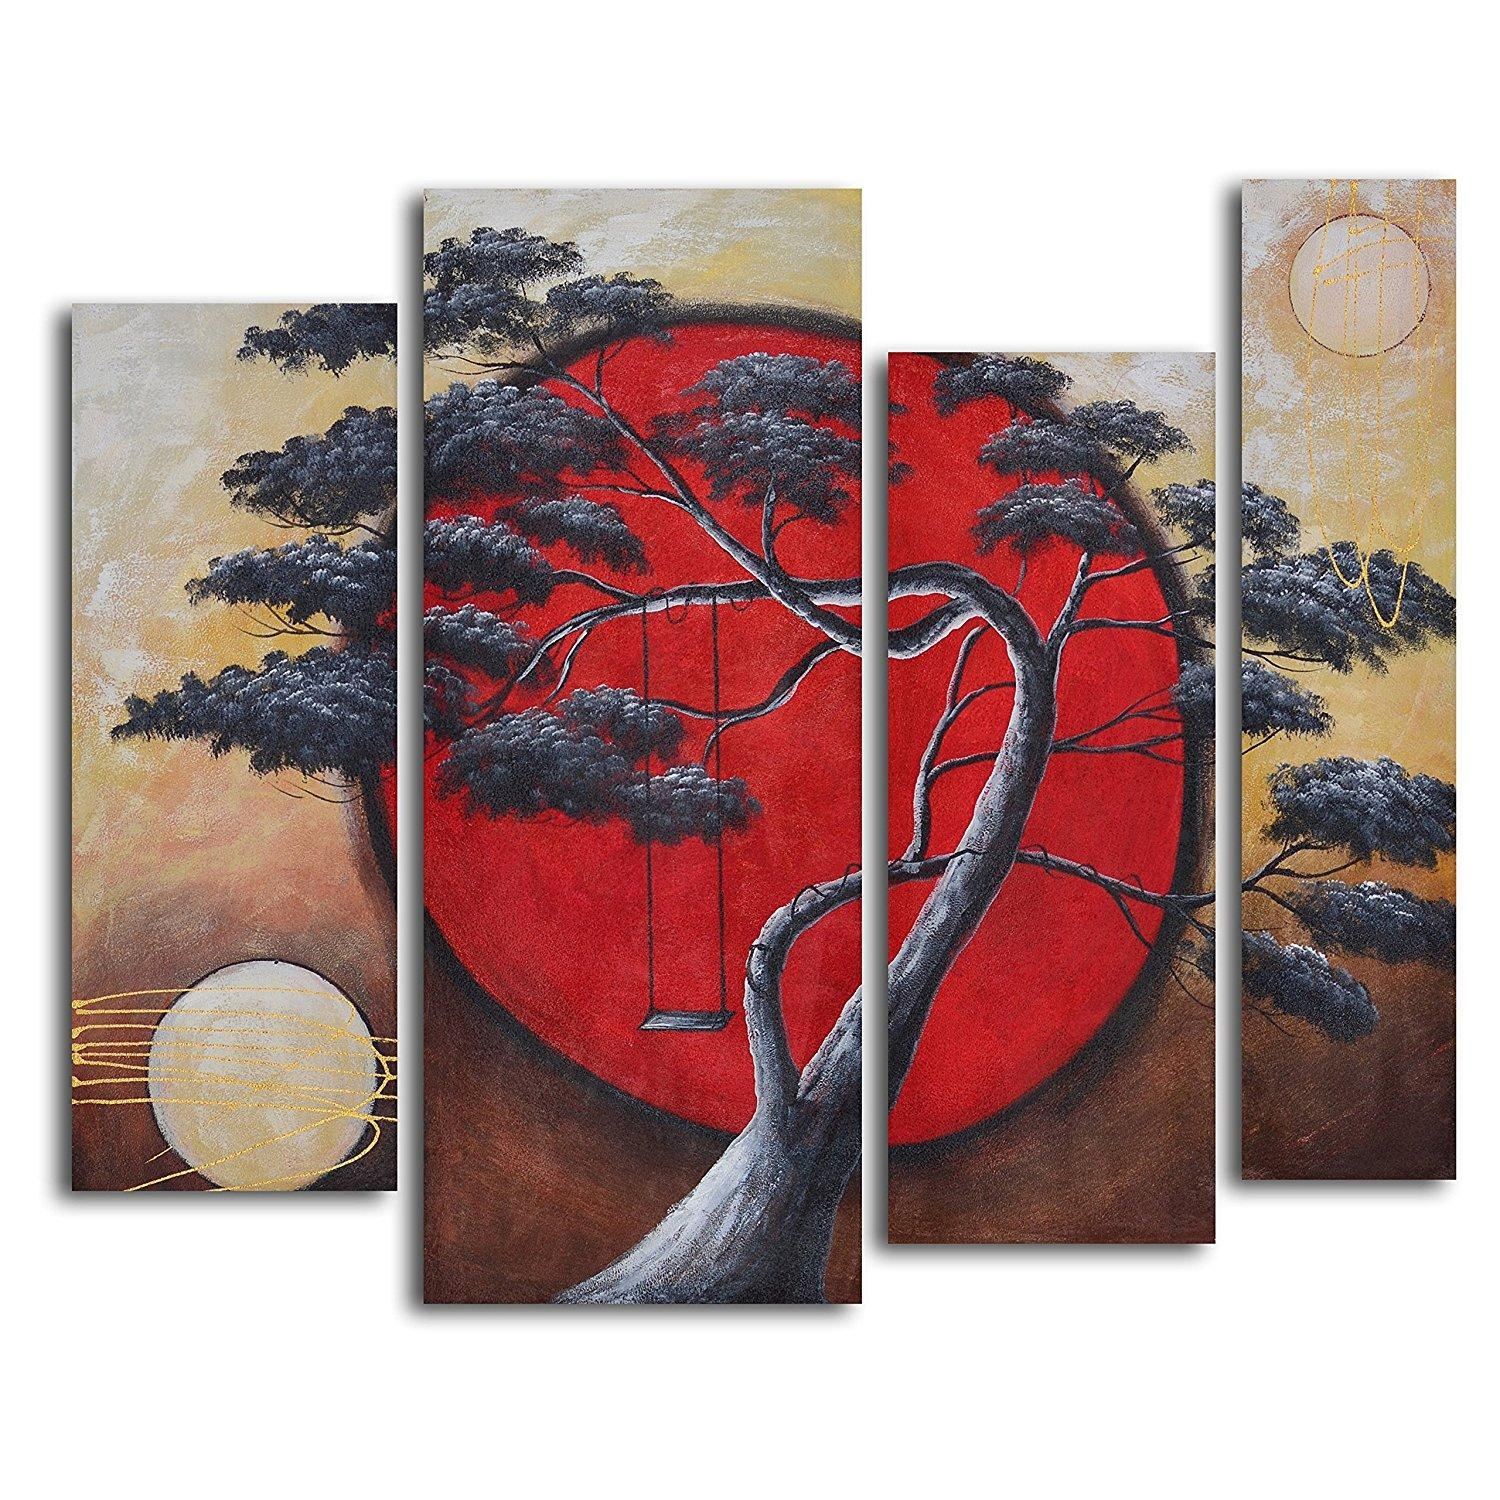 Wall Art: Stunning Canvas Art Sets 2 Piece Canvas Wall Art, Canvas Pertaining To 4 Piece Canvas Art Sets (View 1 of 20)